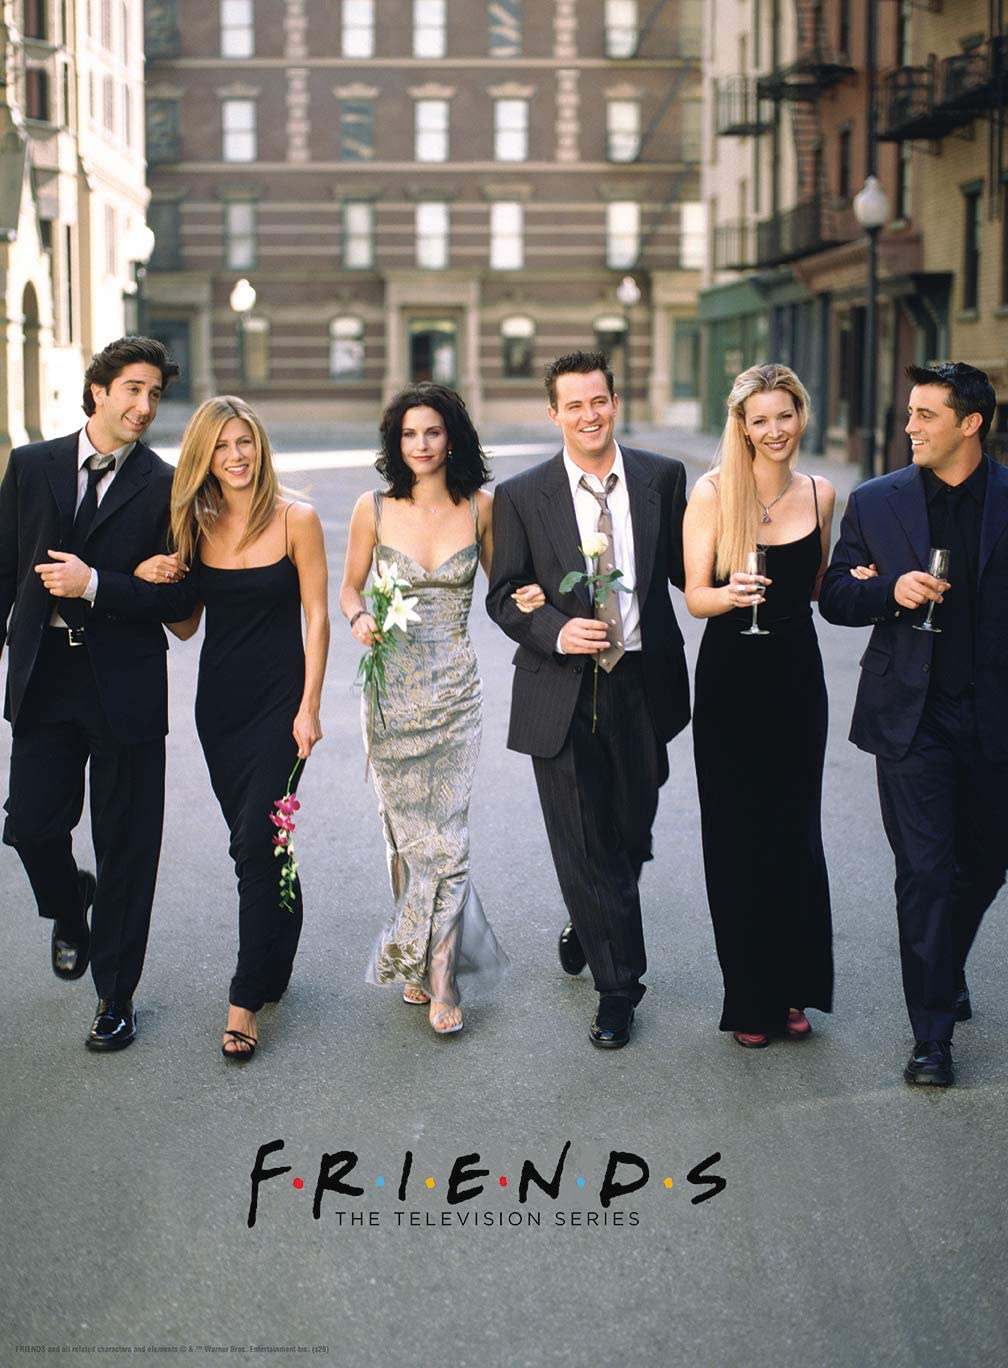 Friends Wedding Movies / Books / TV Jigsaw Puzzle